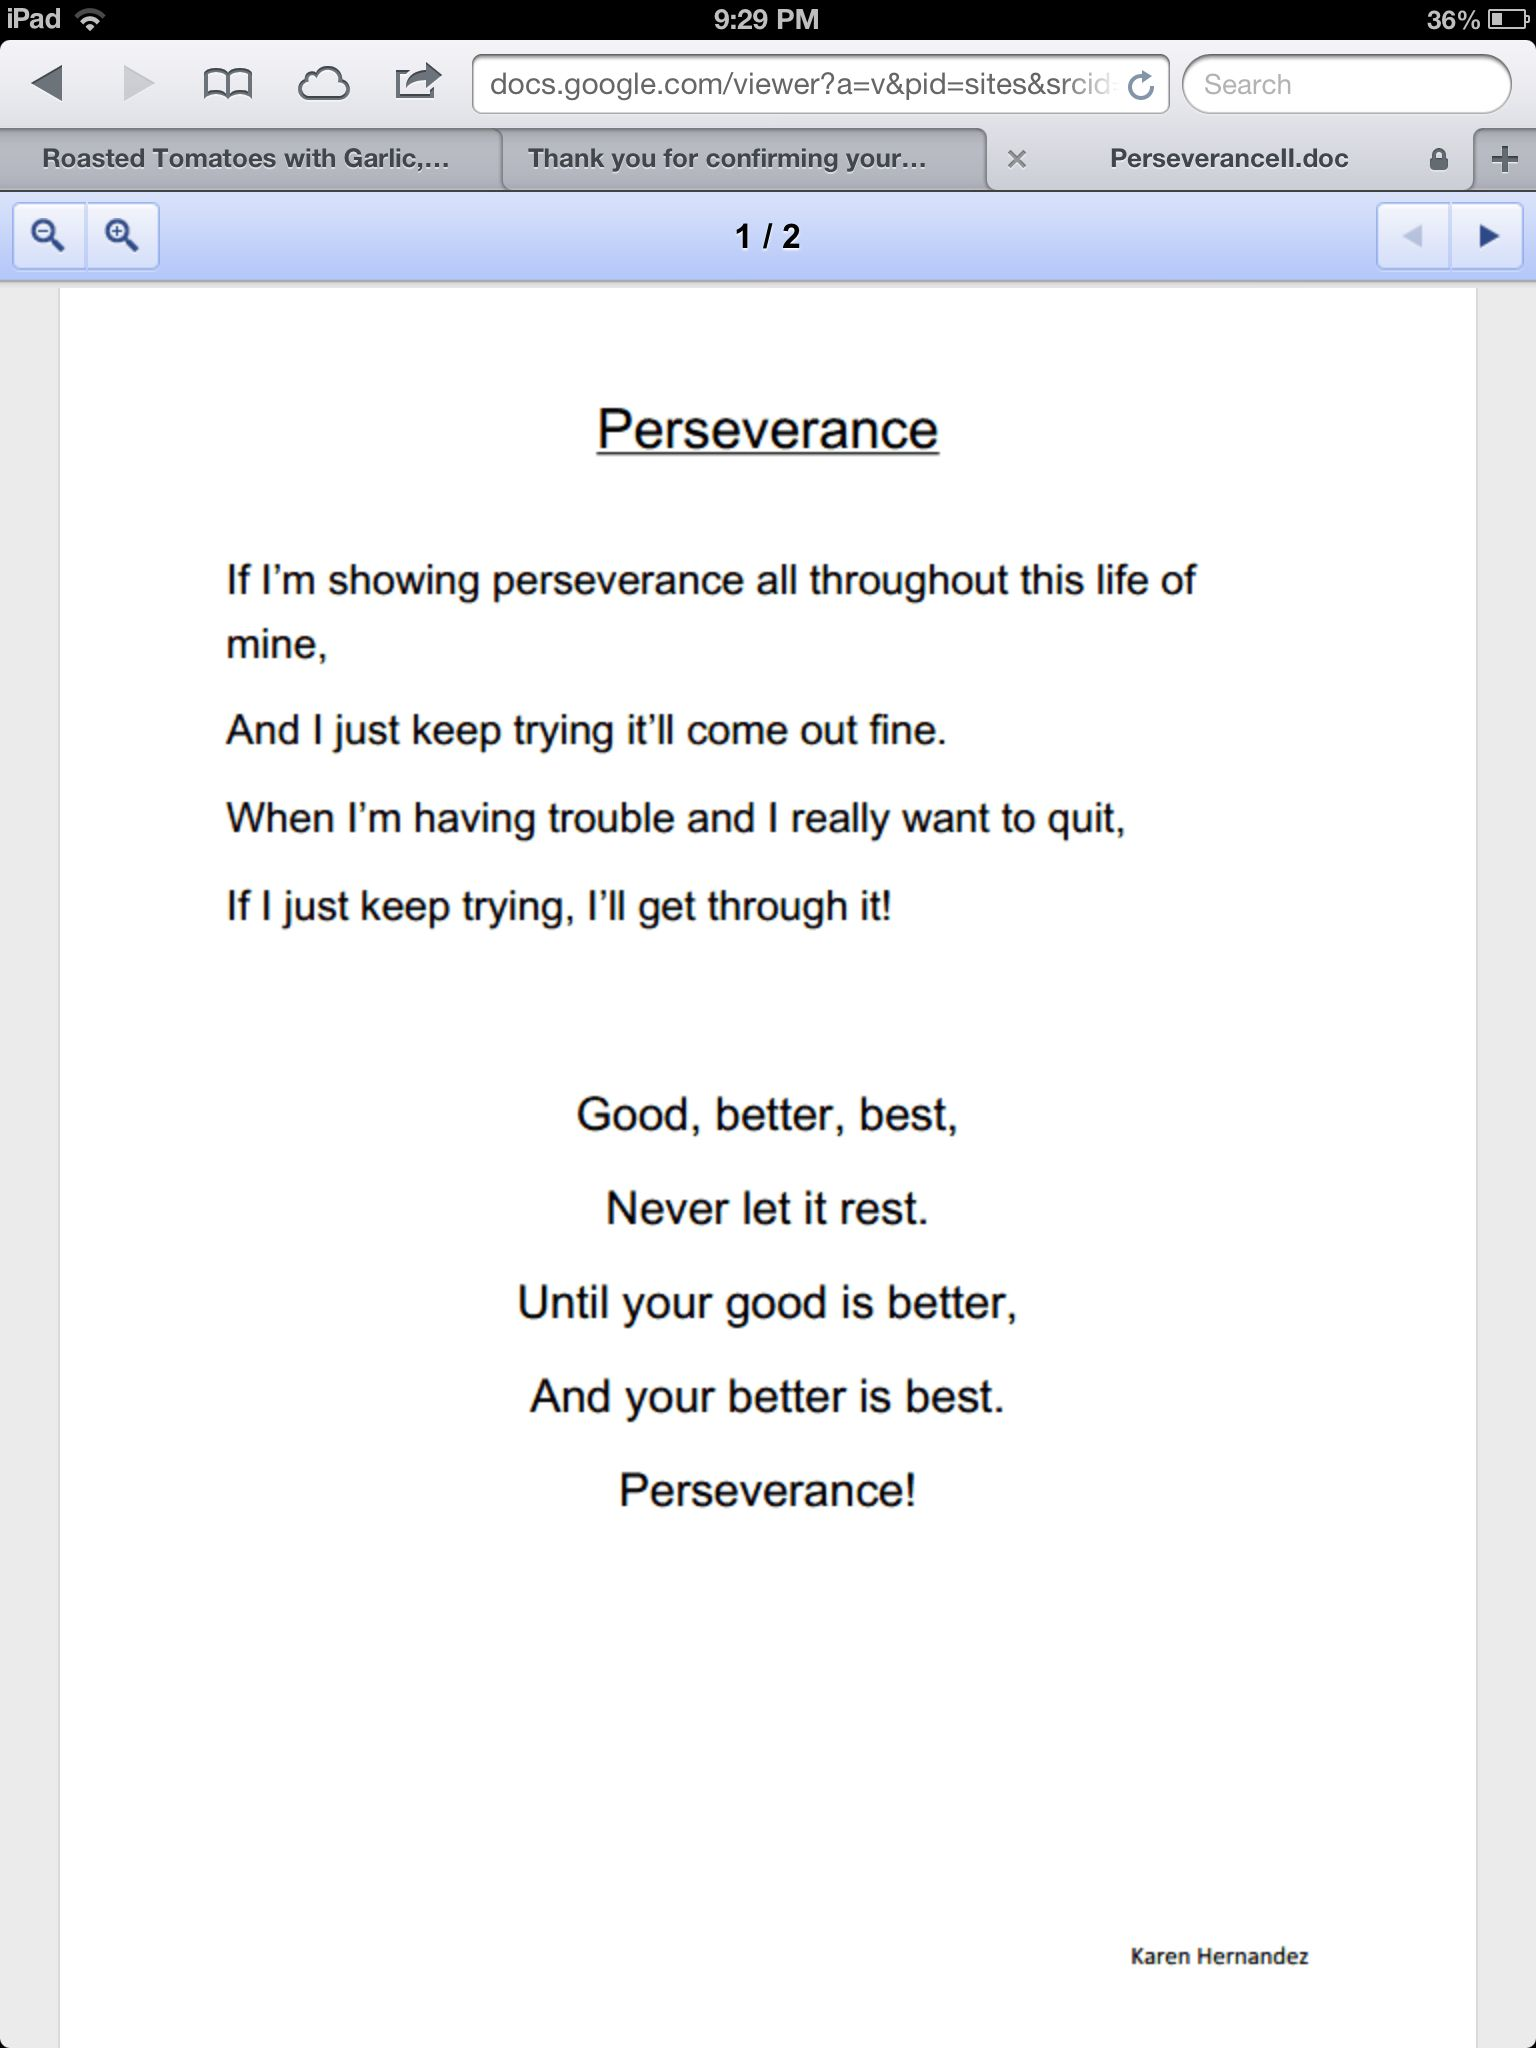 Perseverance Chant